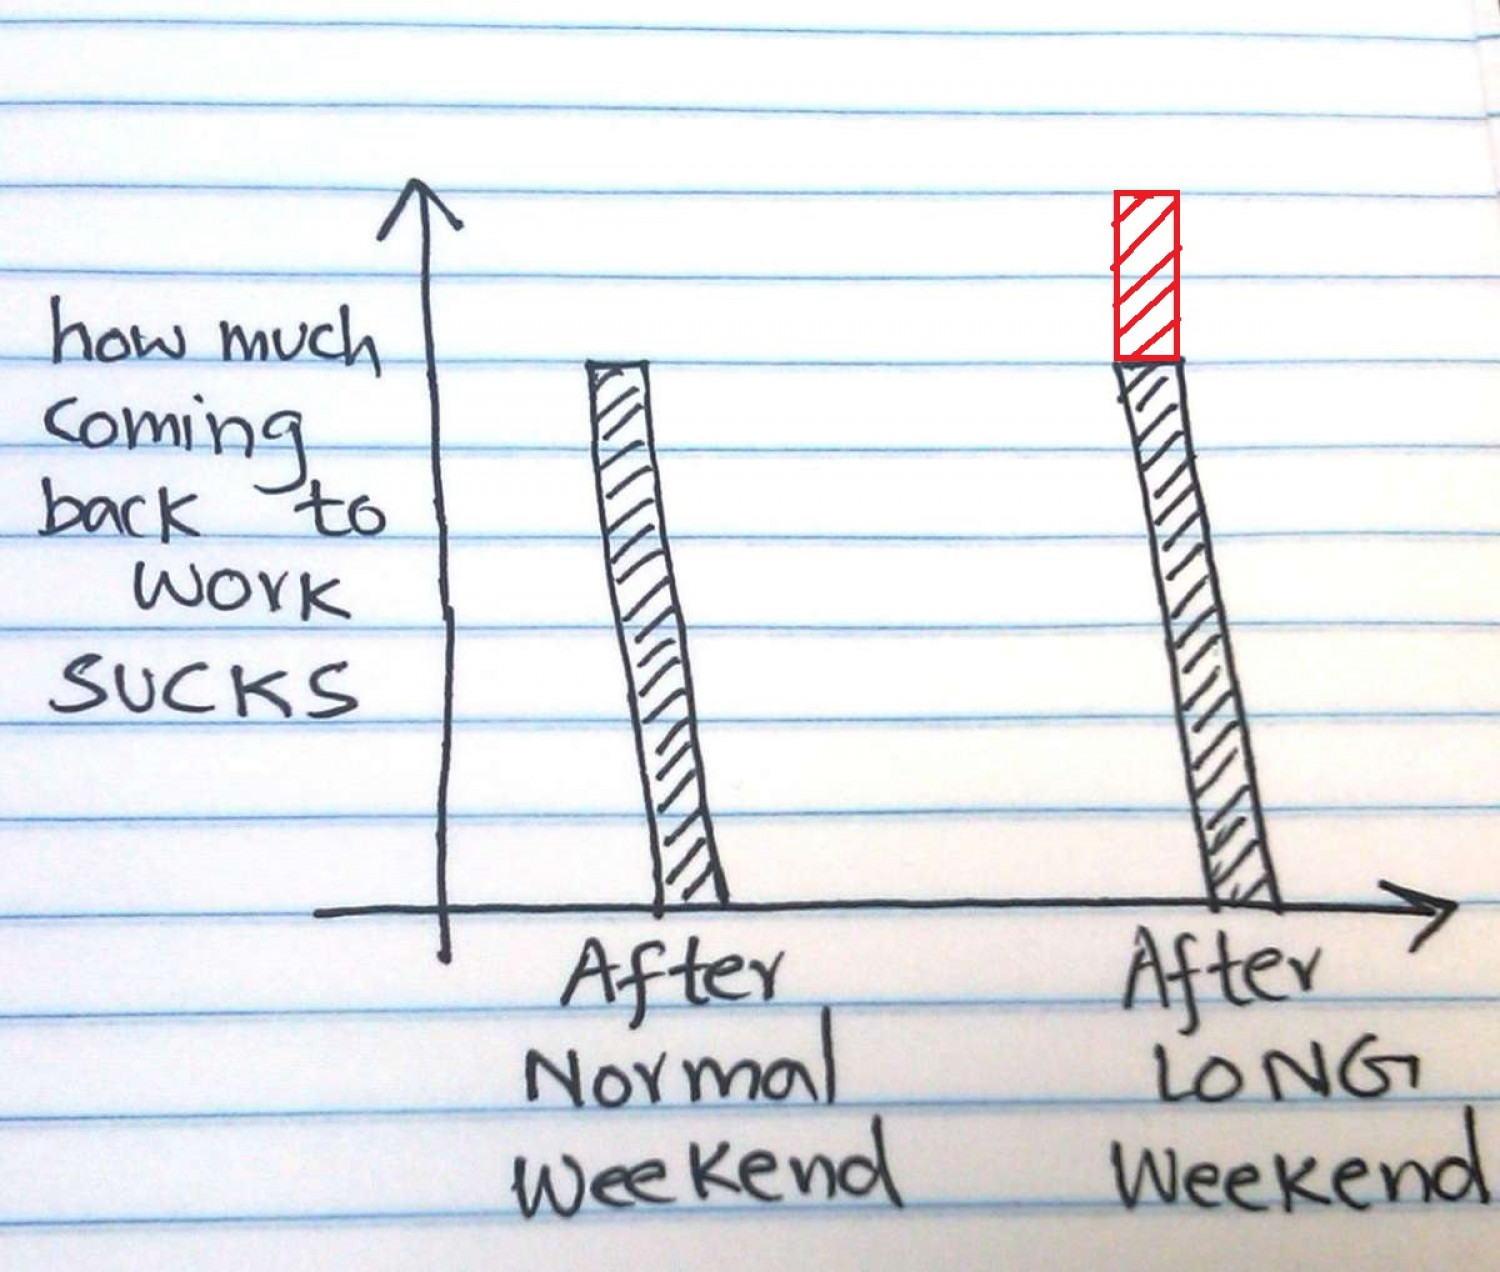 How Much Coming Back to Work Sucks Infographic